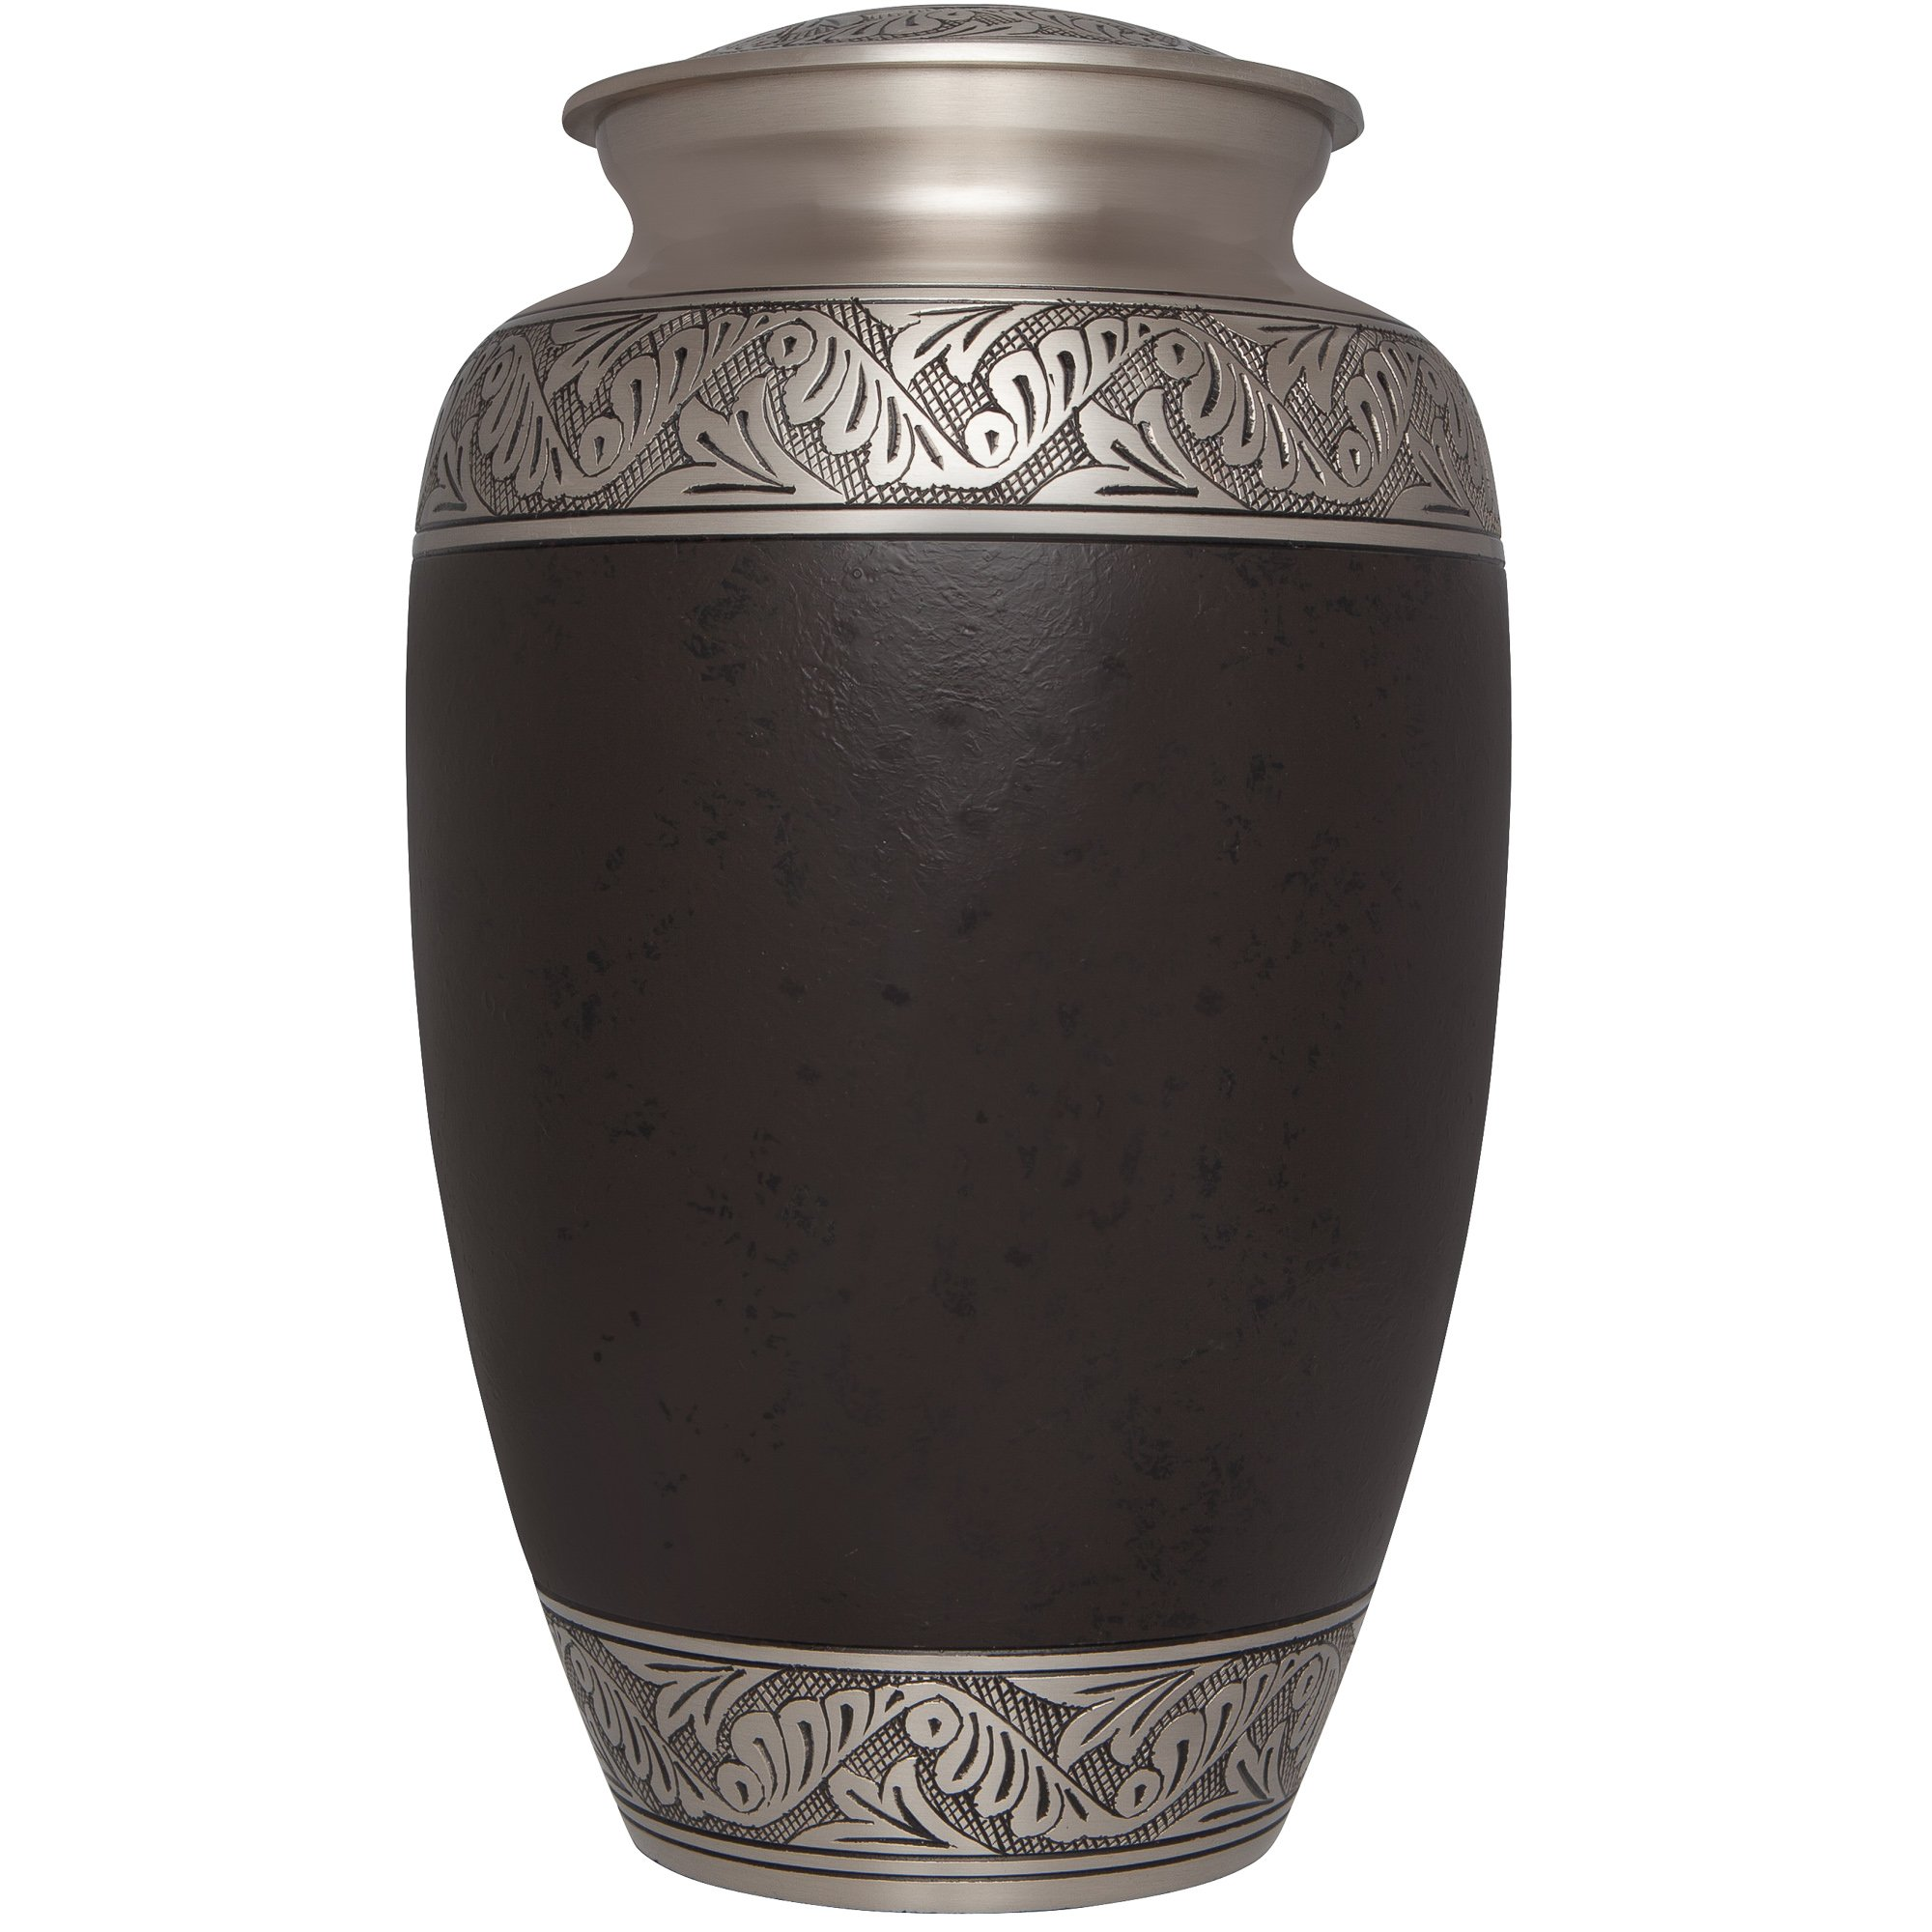 Brown Funeral Urn by Liliane Memorials - Cremation Urn for Human Ashes - Hand Made in Brass - Suitable for Cemetery Burial or Niche - Large Size fits remains of Adults up to 200 lbs - Ojaha Model